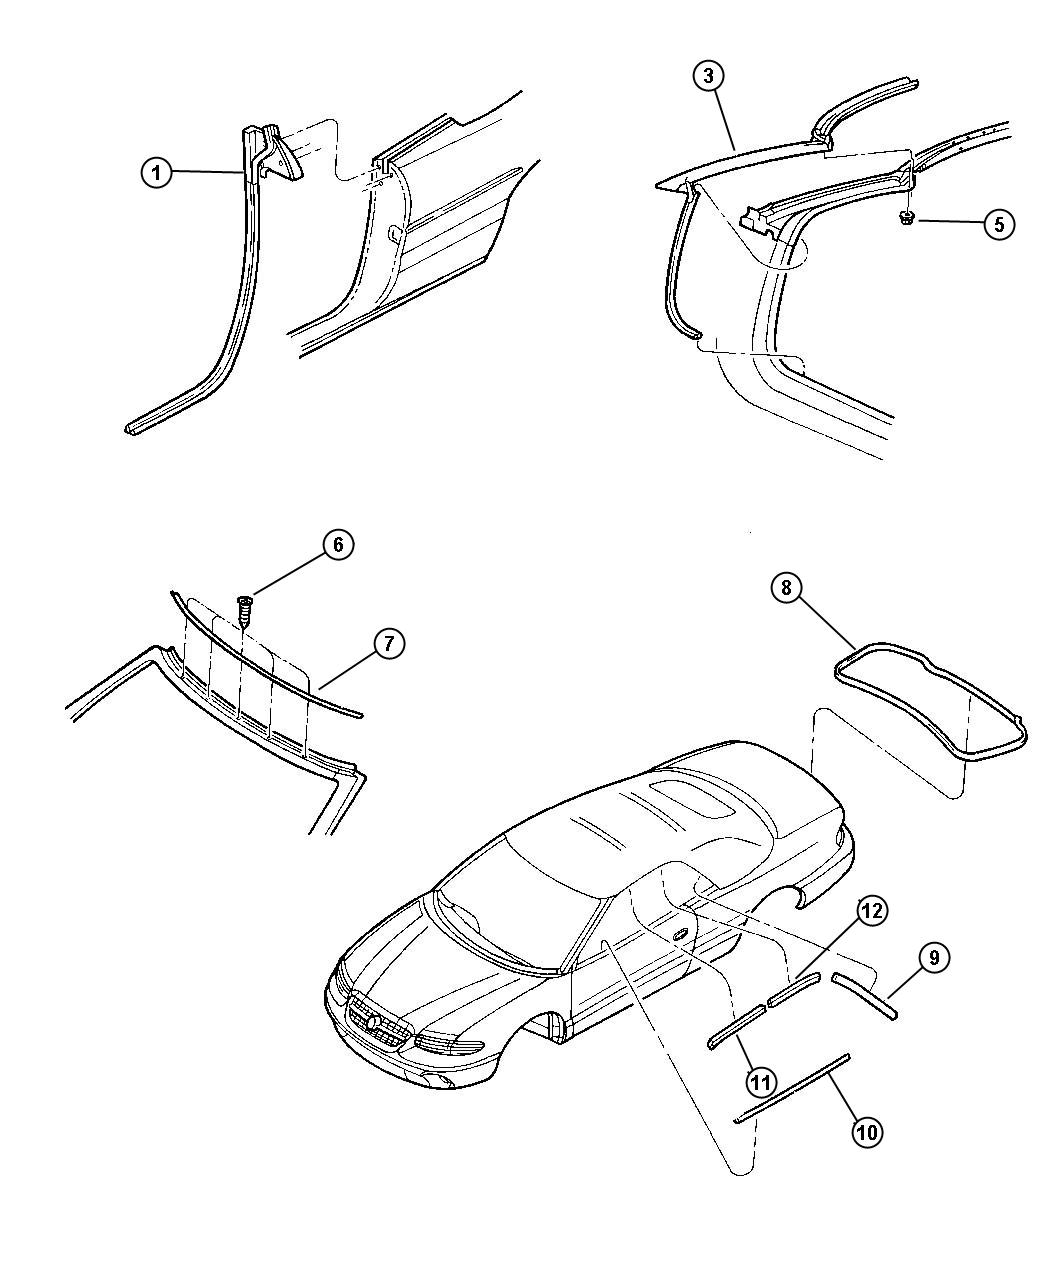 tags: #jeep no windshield#replacement jeep frames#jeep yj windshield frame# wrangler windshield frame#yj windshield frame#jeep windshield glass#jeep  wrangler